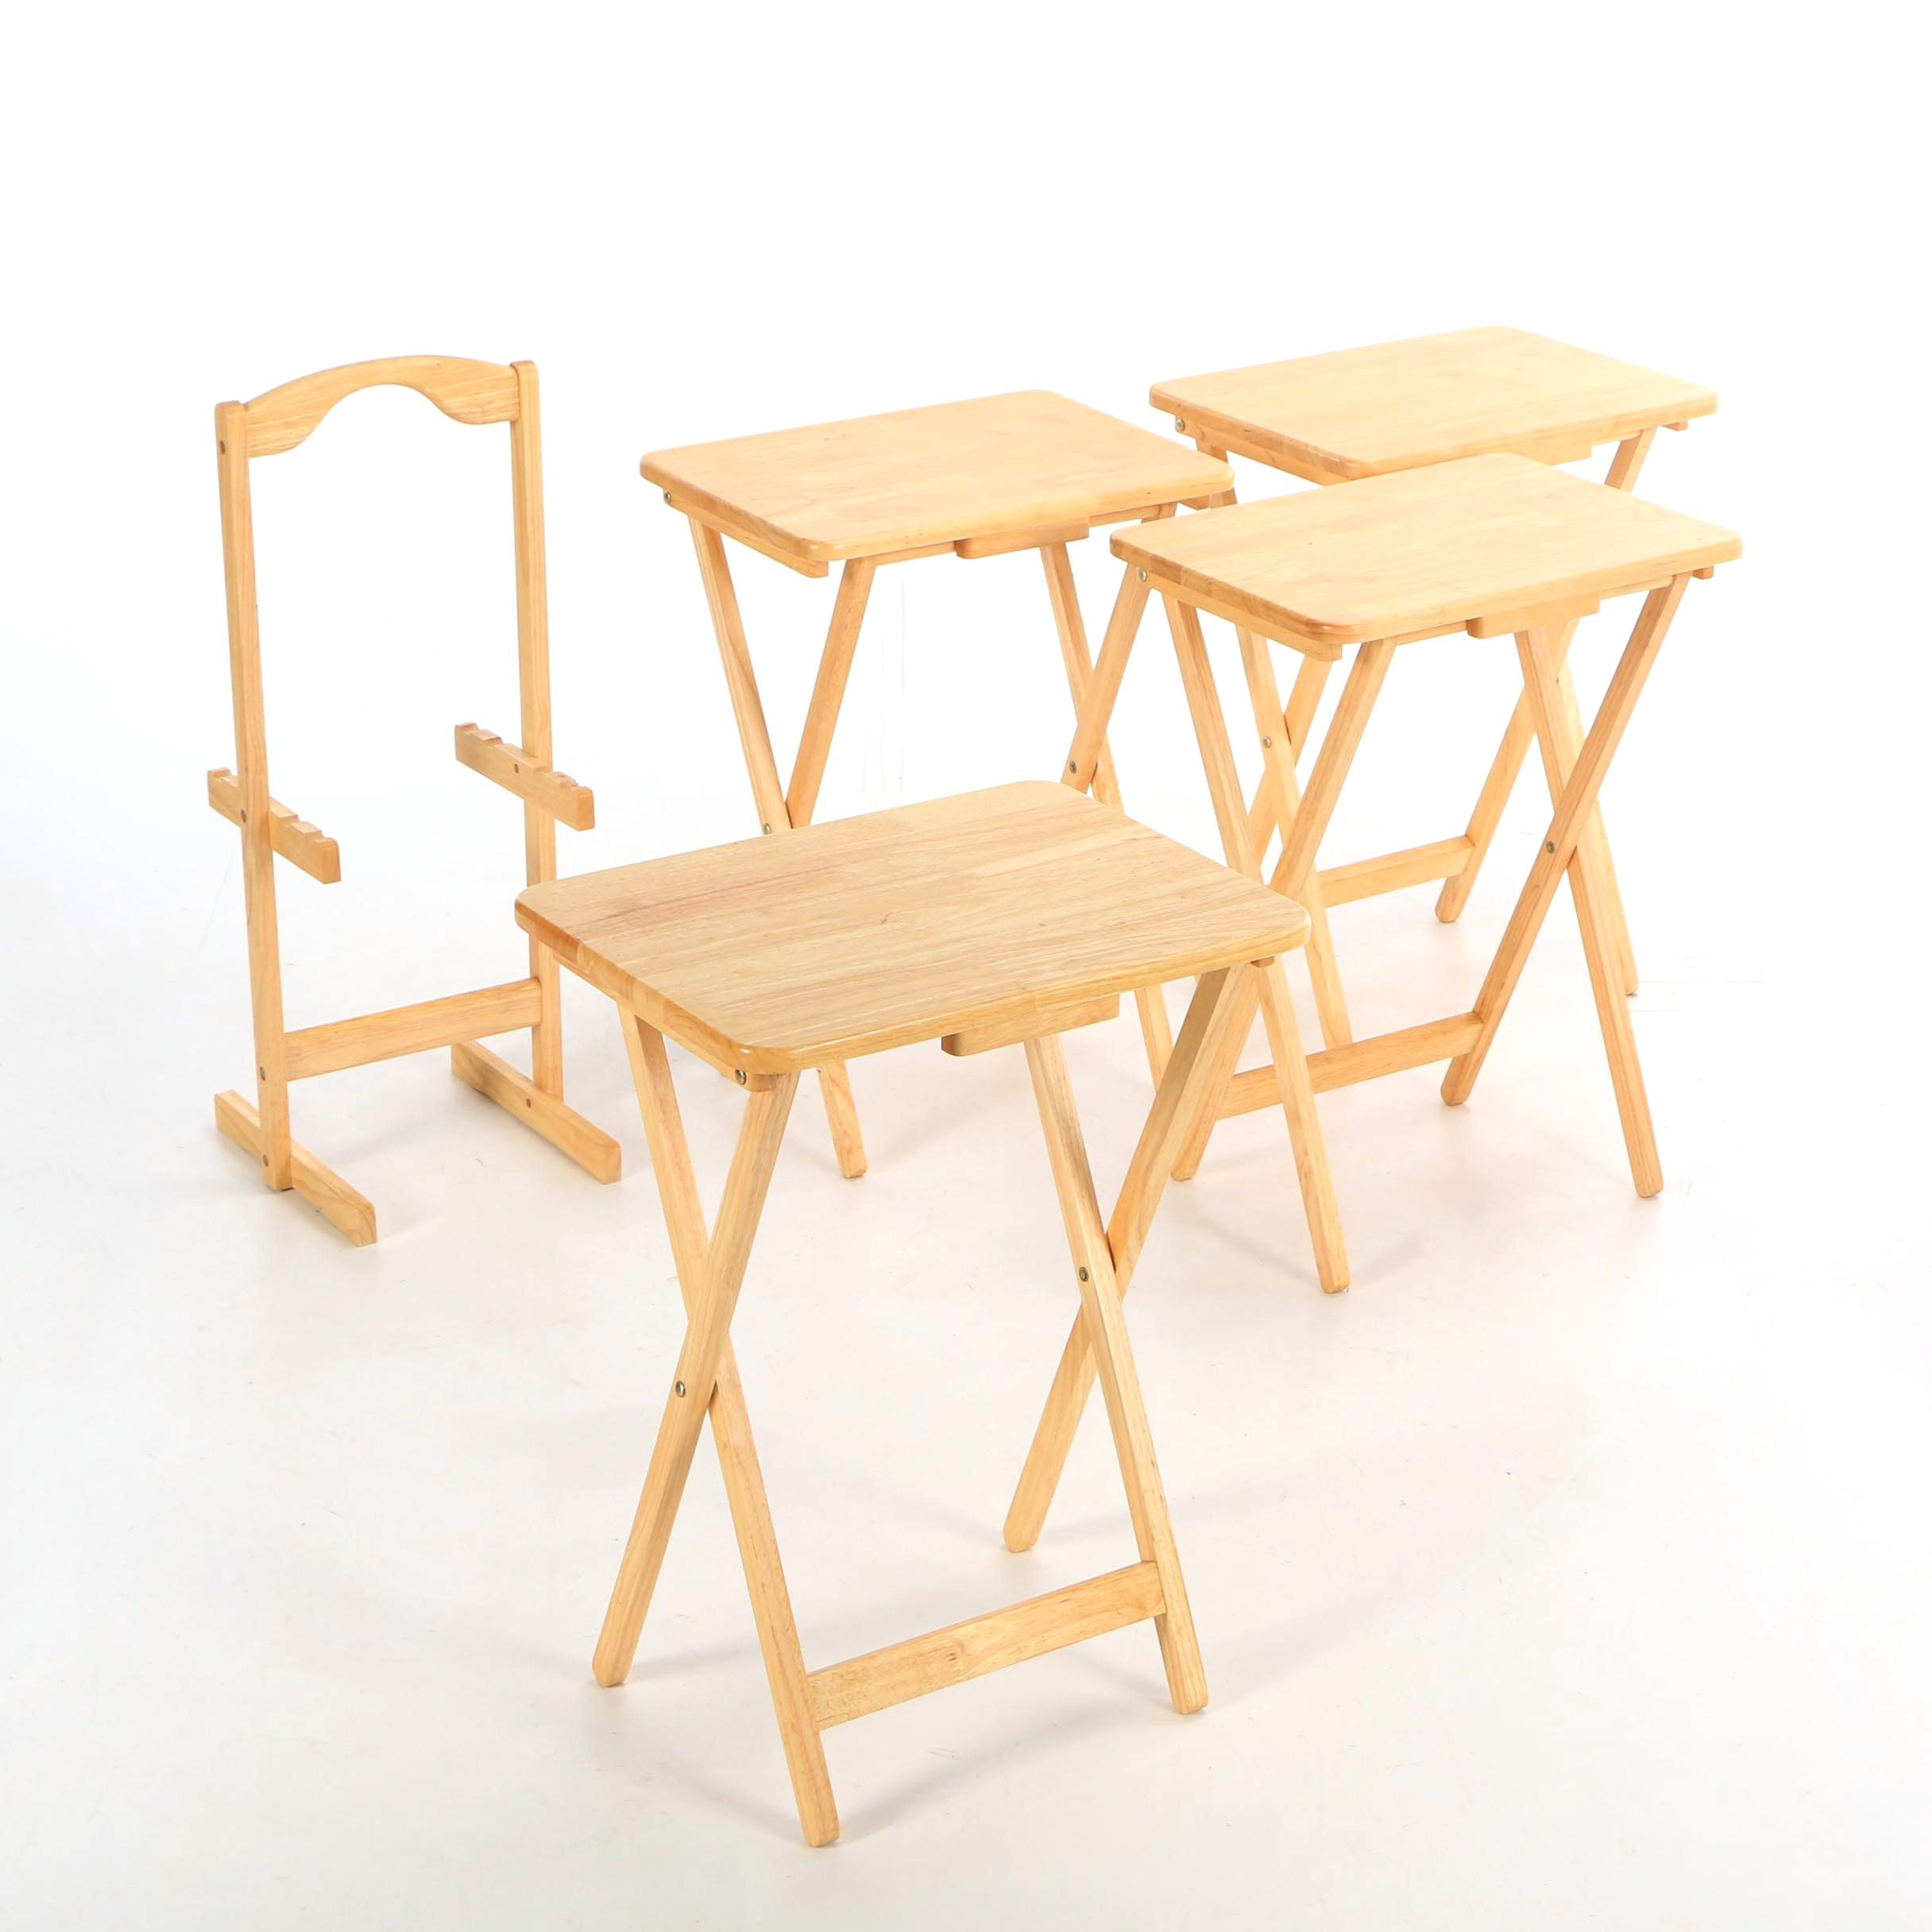 Four Contemporary Blond Wood Folding Tables with Stand